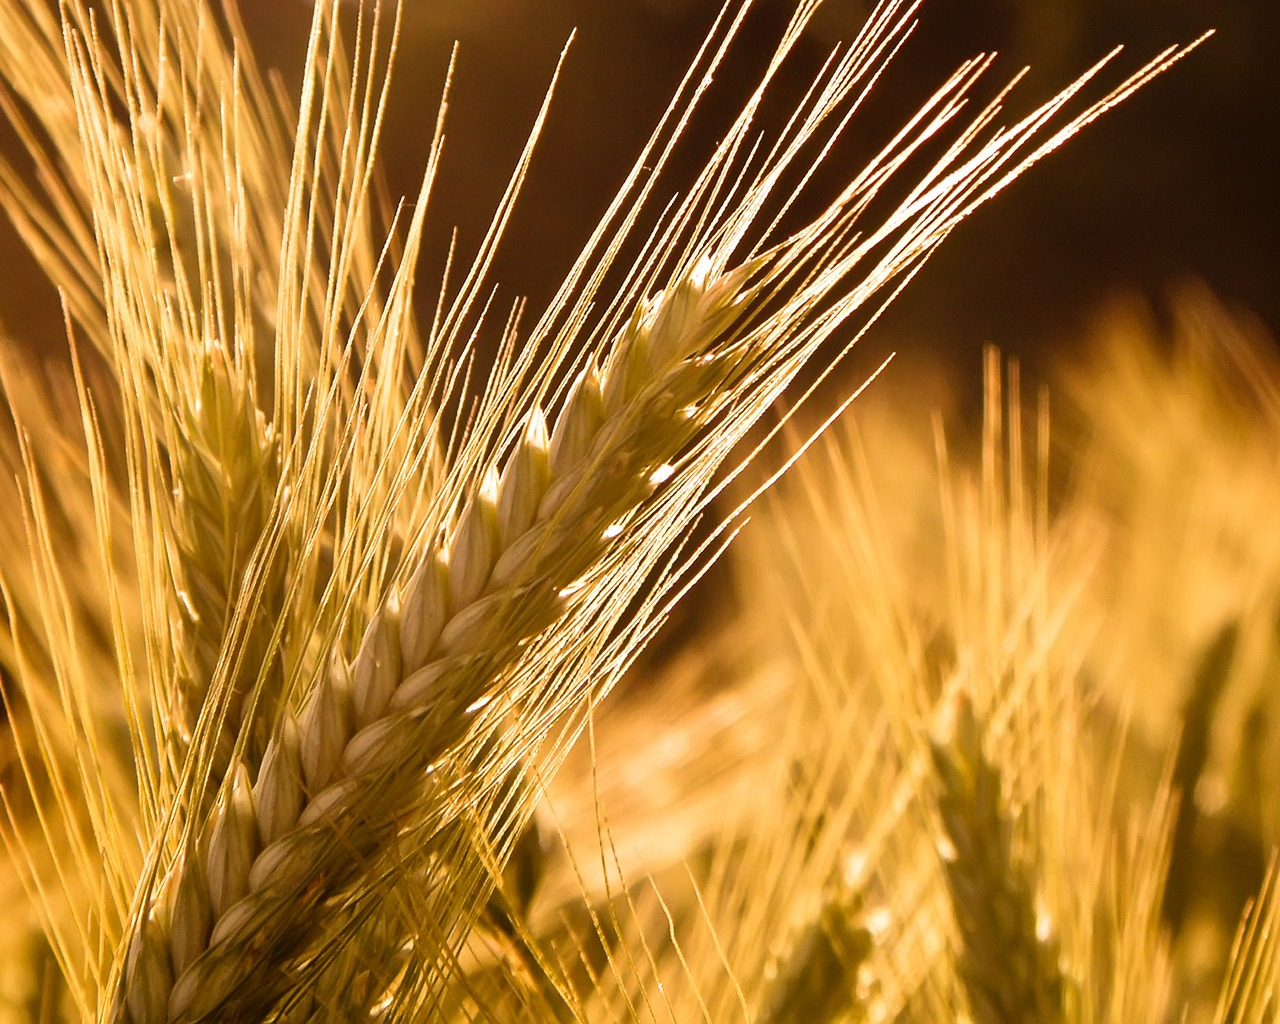 Related For Barley Background. Barley